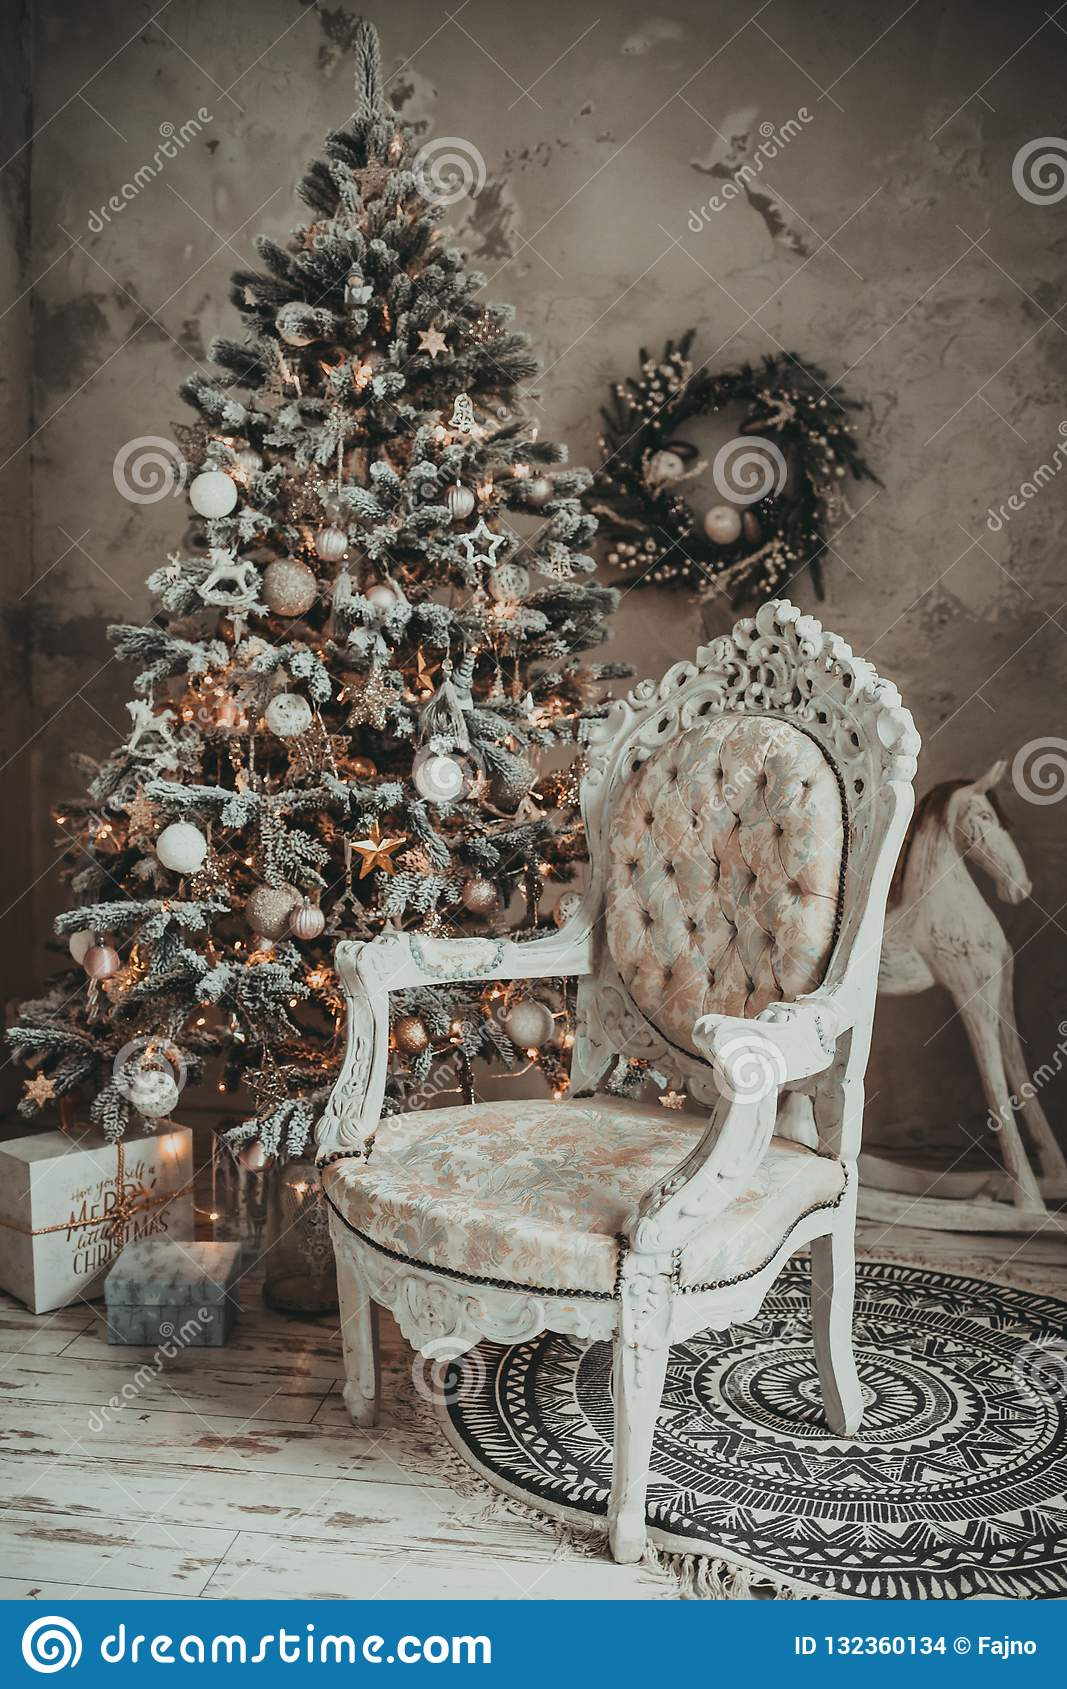 Christmas Holiday Vintage Decorations Stock Image of